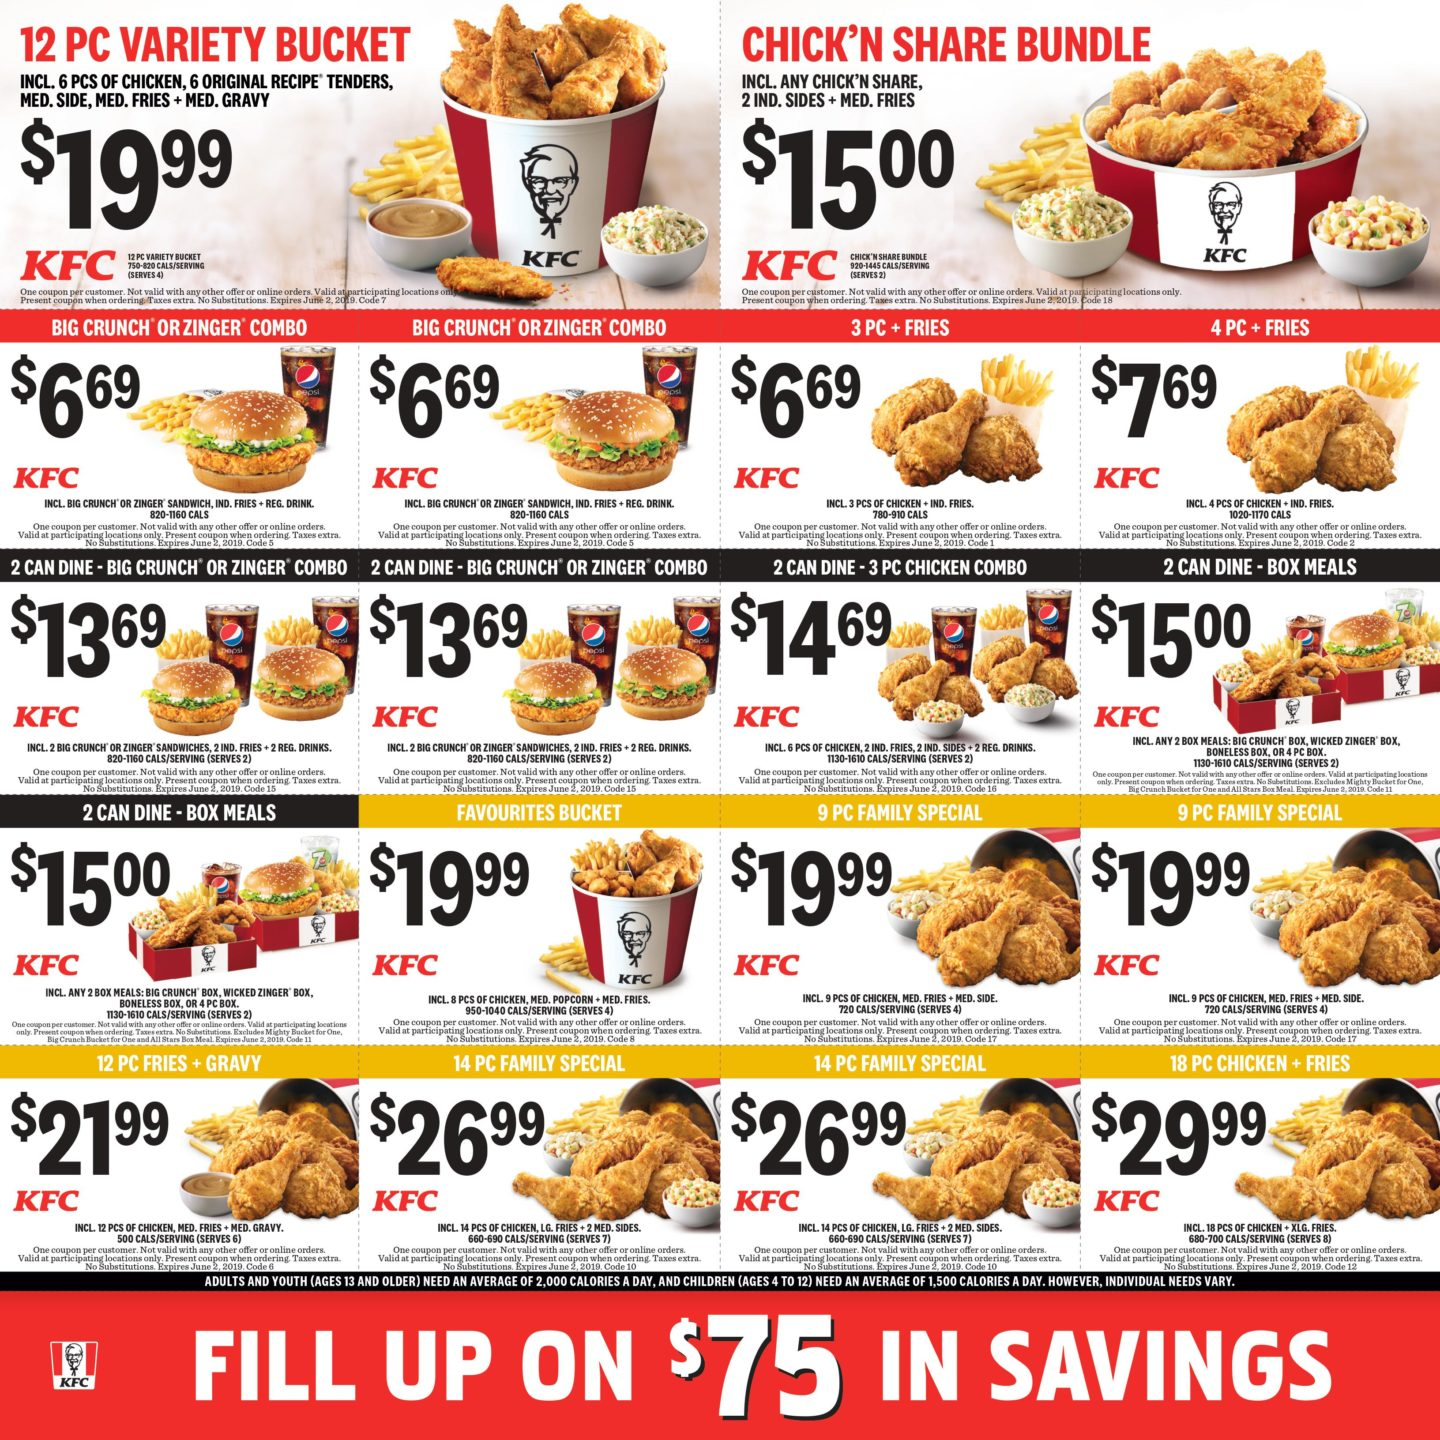 photograph regarding Kfc Printable Coupons called KFC Canada Discount coupons - legitimate all through July 28, 2019